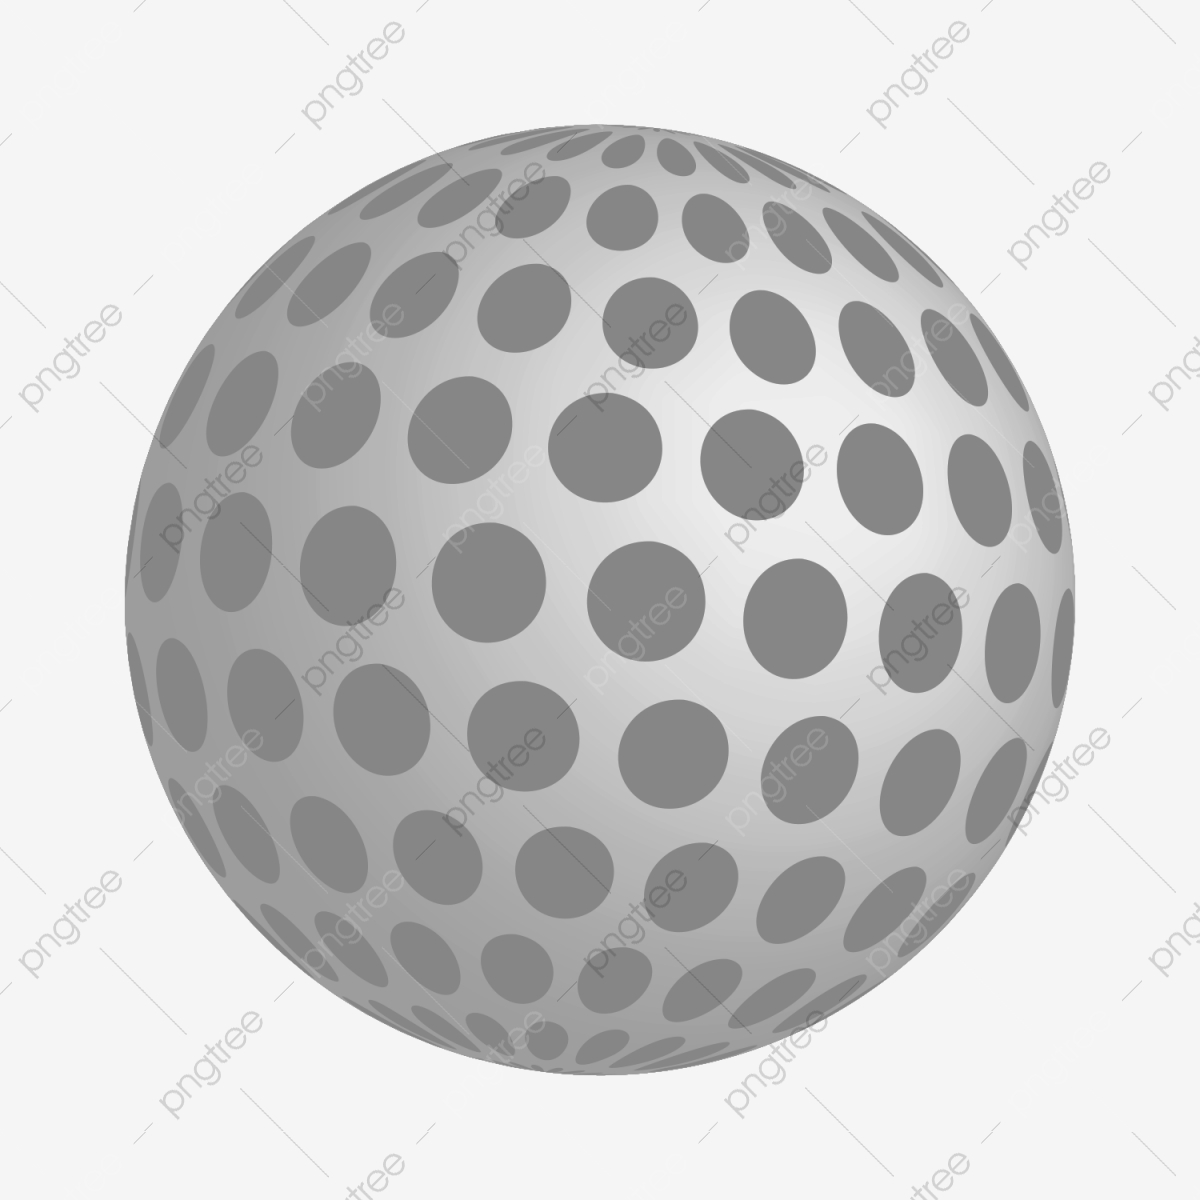 3d Golf Ball Png Transparent Background Image Golf Golf Ball Golf Ball Vector Png Transparent Clipart Image And Psd File For Free Download